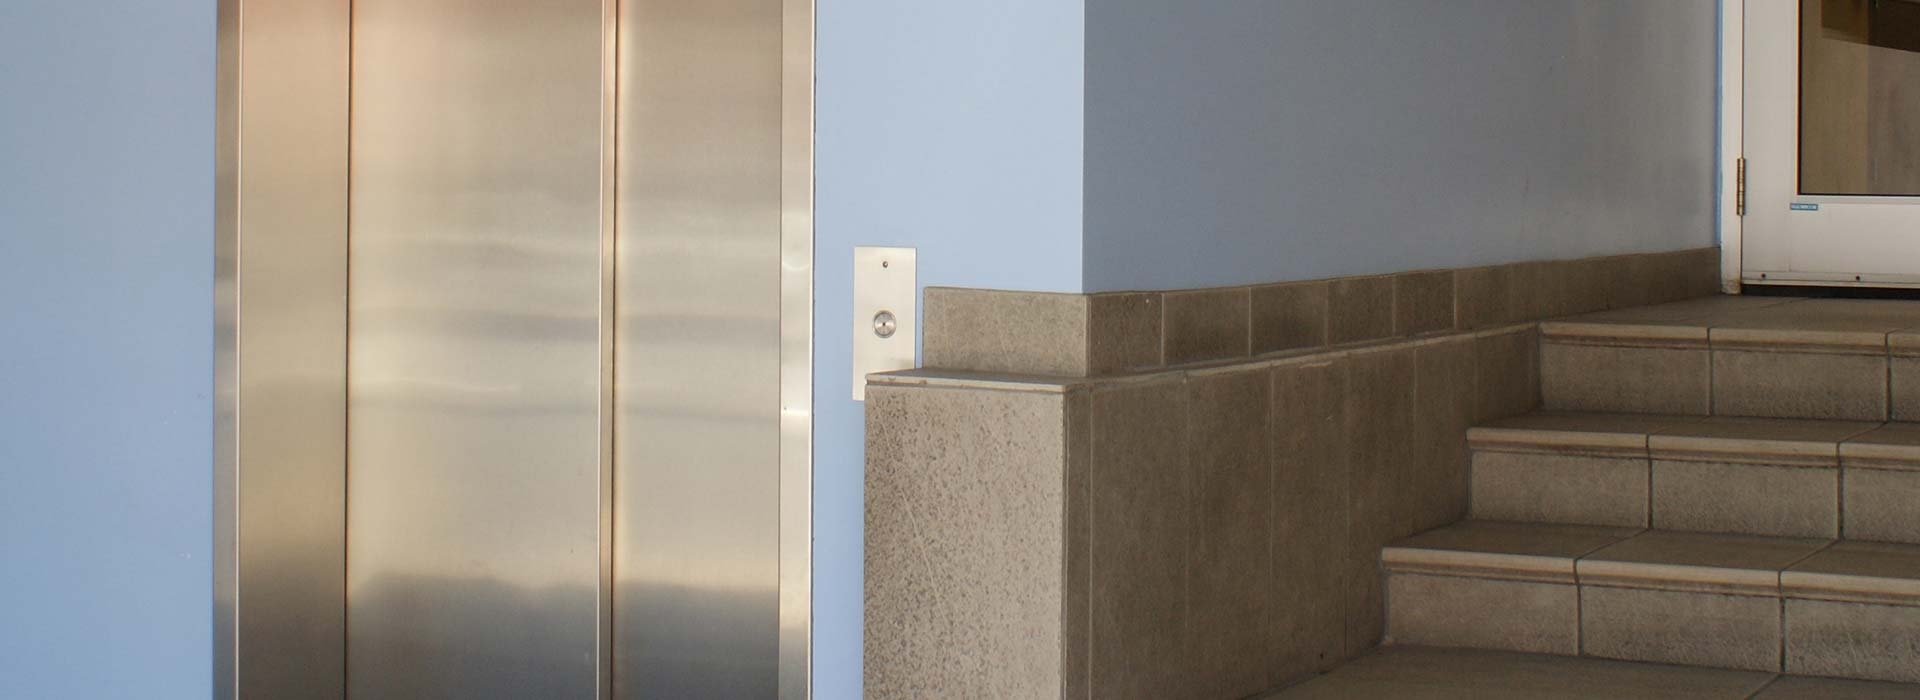 Elevator Manufacturers for Commercial Use with Federal Elevator